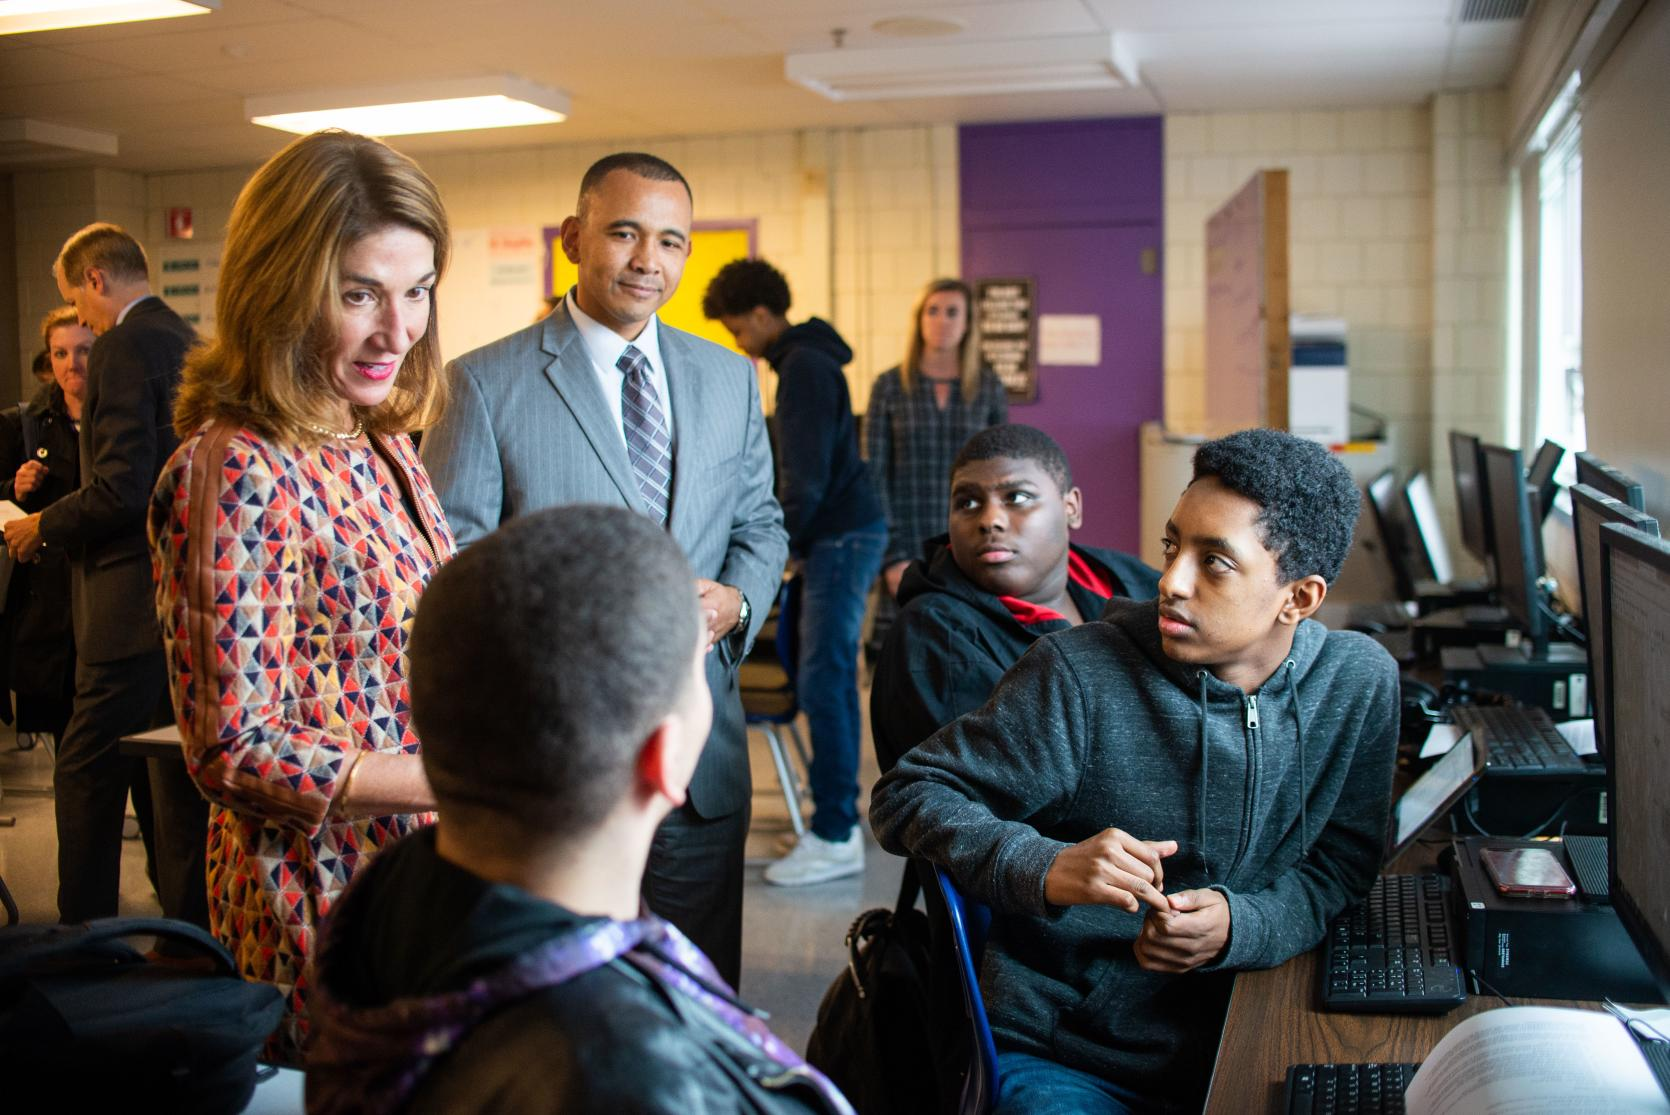 Lt. Governor Polito with Charlestown High School Principal Will Thomas and Early College students.